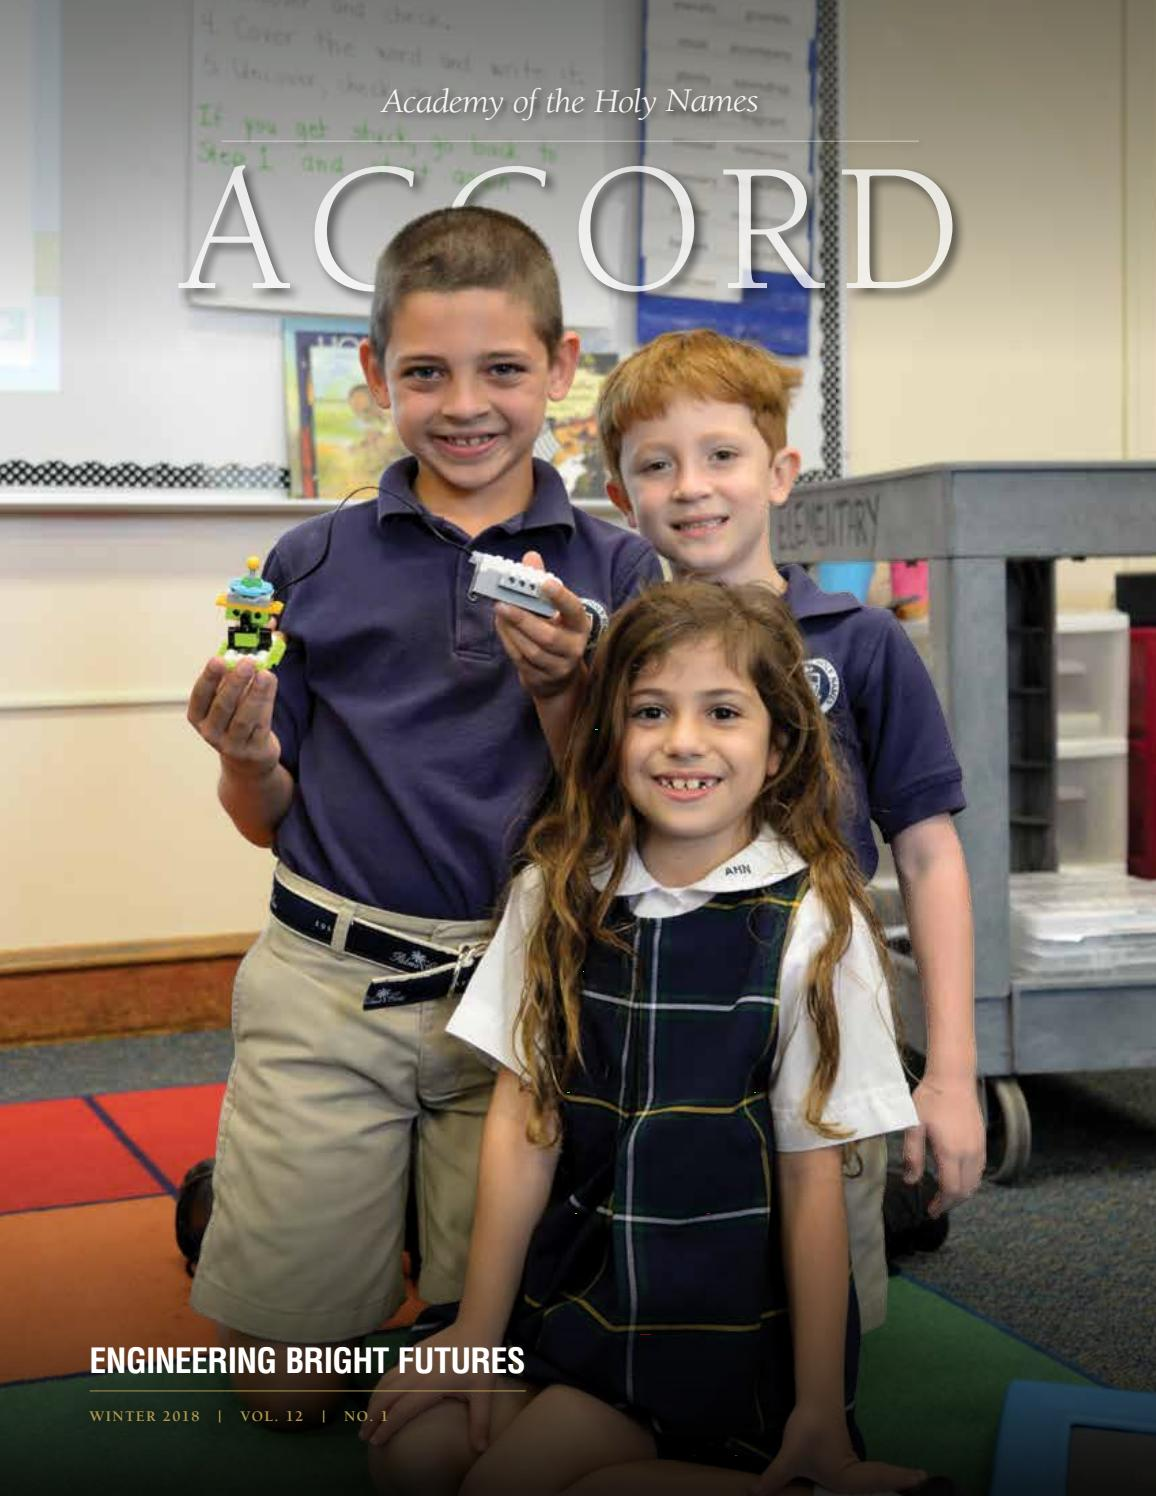 Accord - Winter 2018 by Academy of the Holy Names - issuu